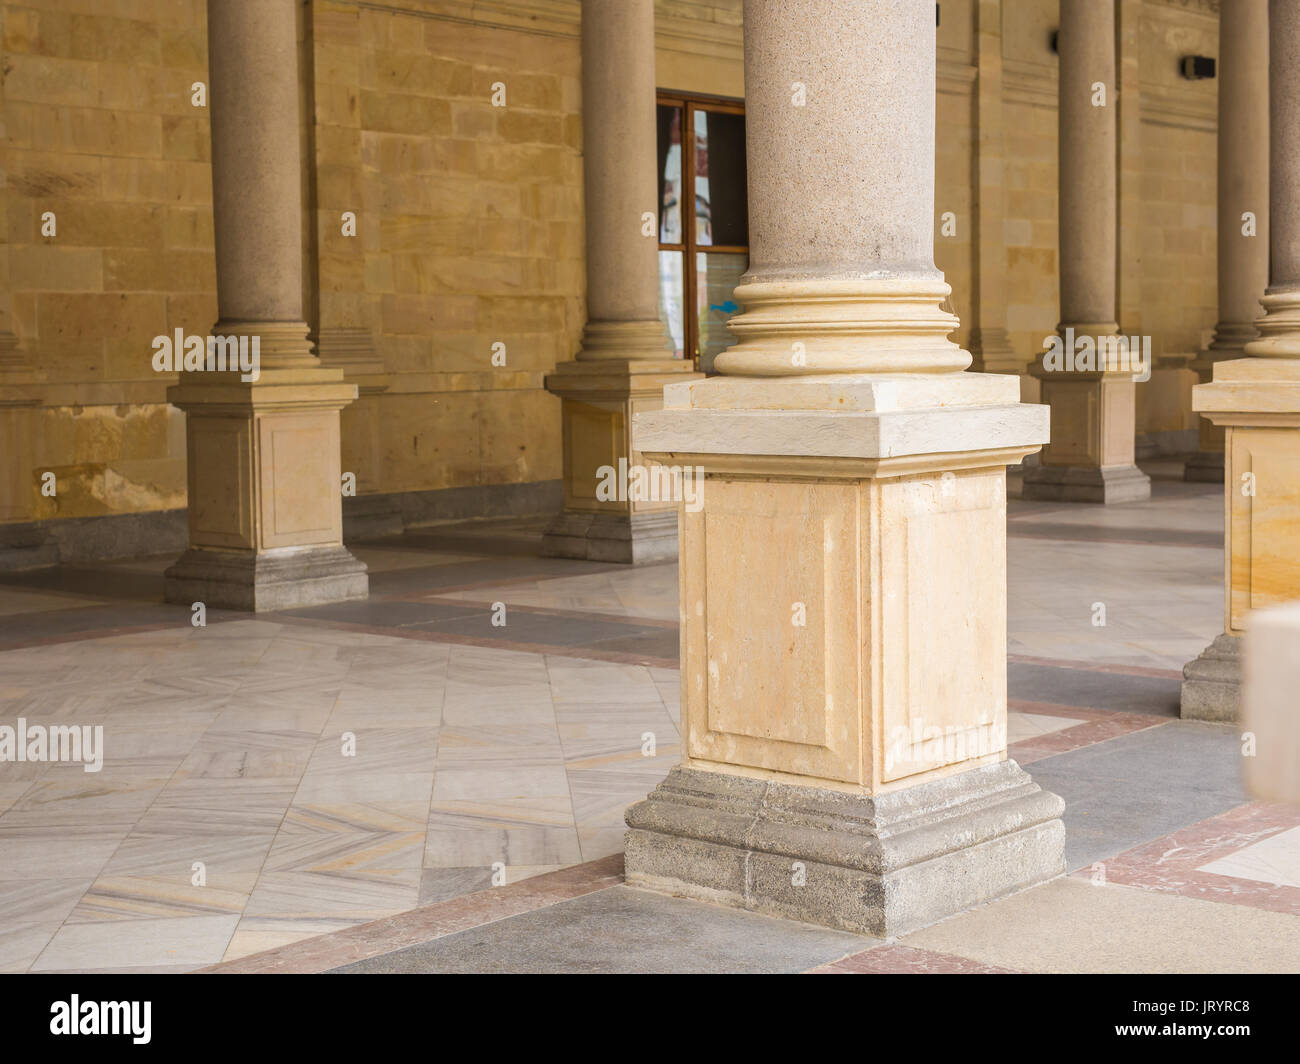 Chick castle stock photos chick castle stock images alamy for Exterior decorative columns